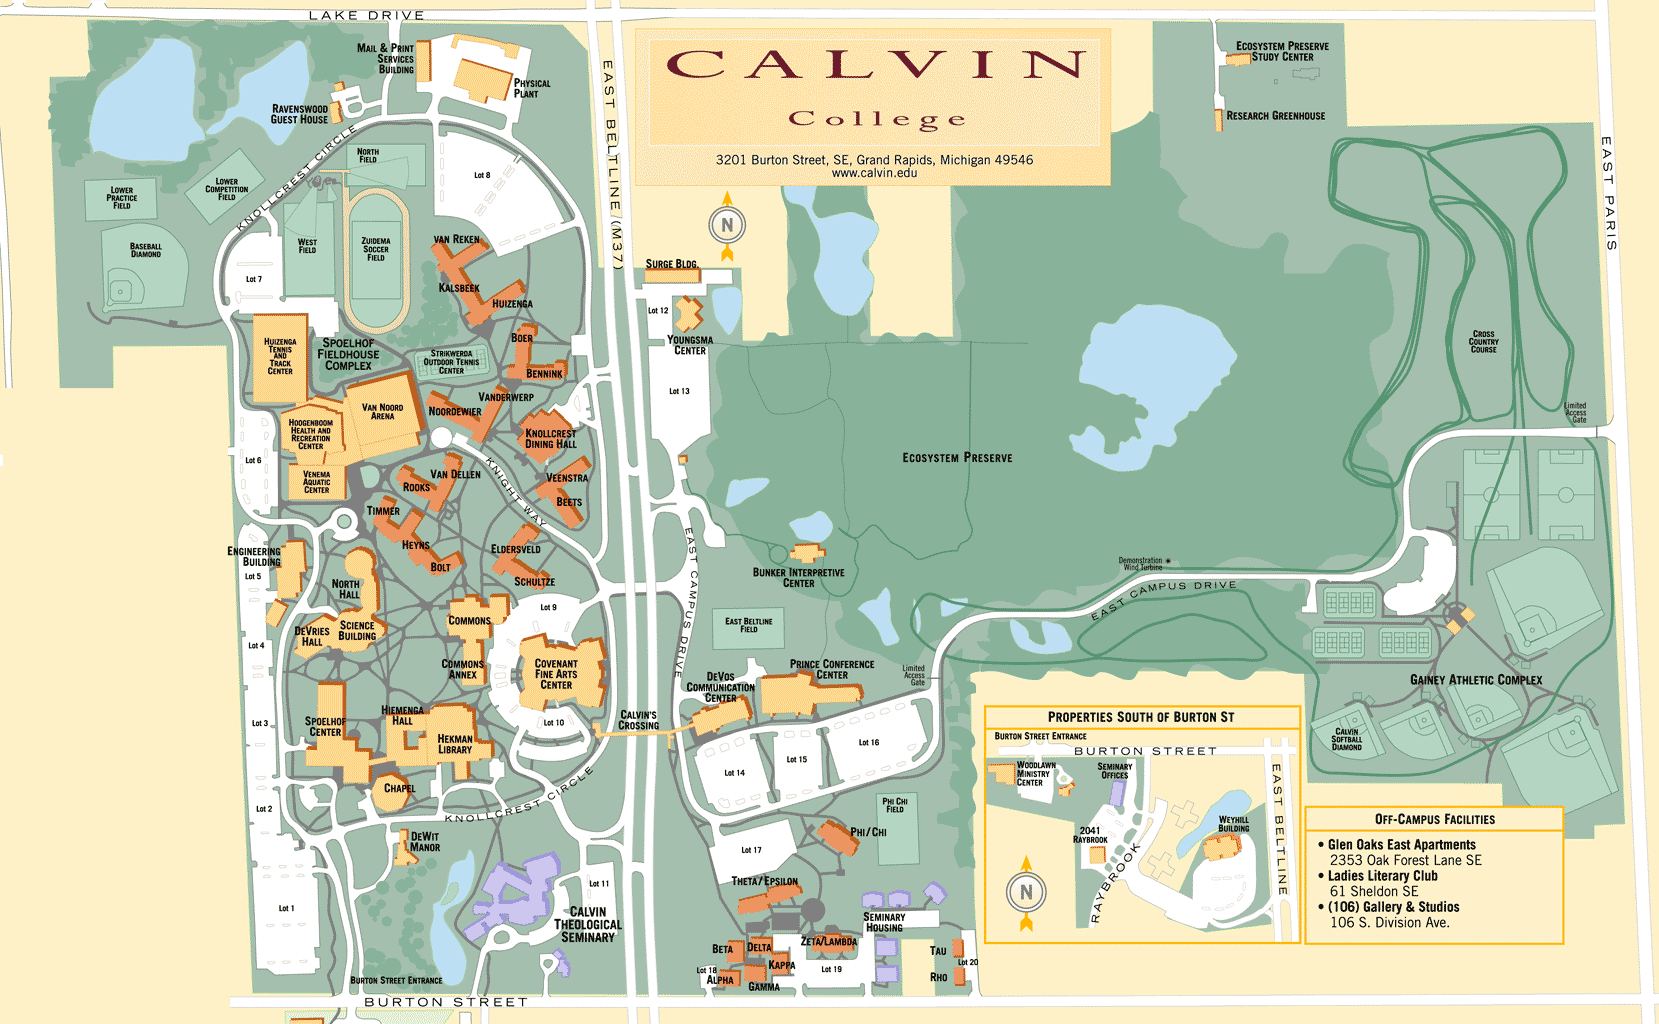 Mid Pacific Institute Campus Map.Map Of Calvin College Campus Maps Pinterest Campus Map